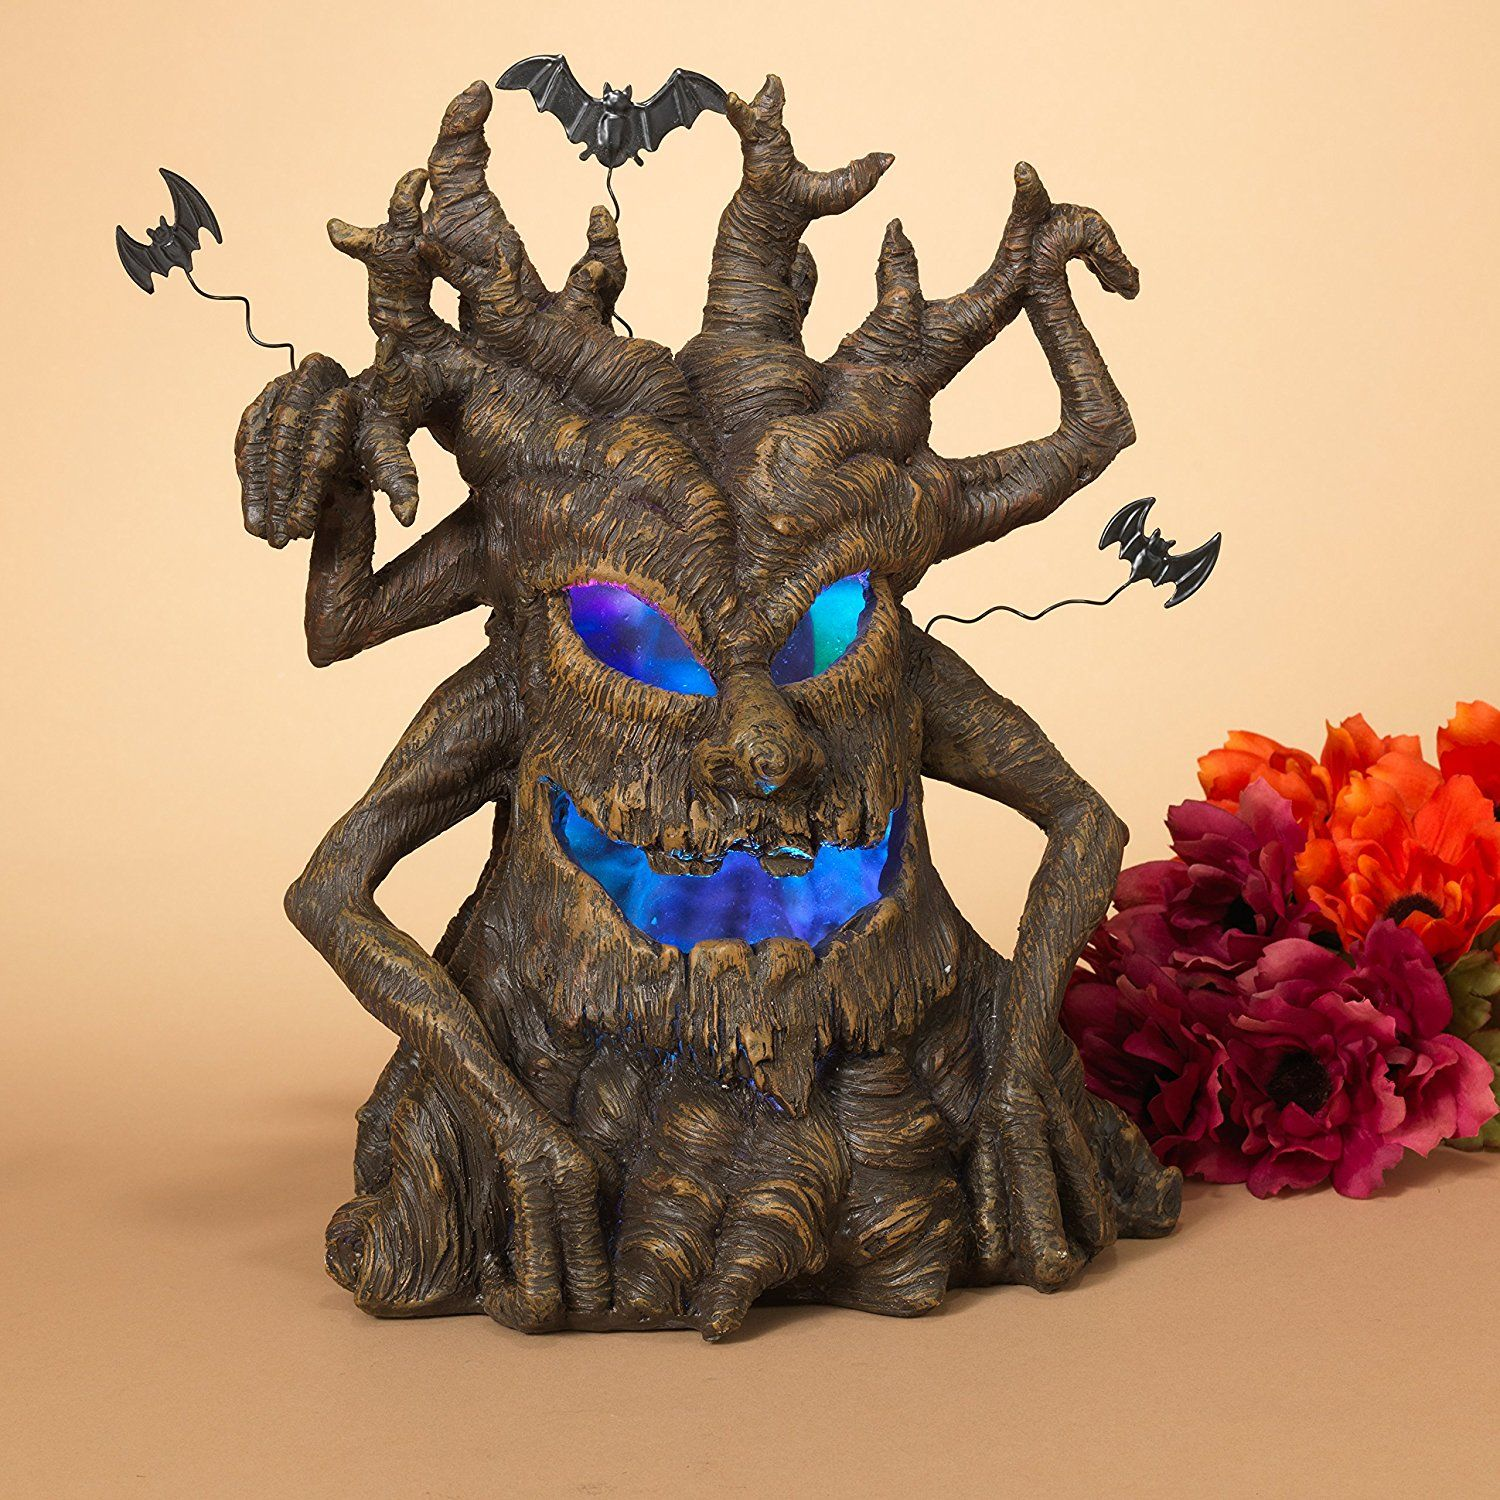 Add a ghoulish touch to your Halloween decor with our